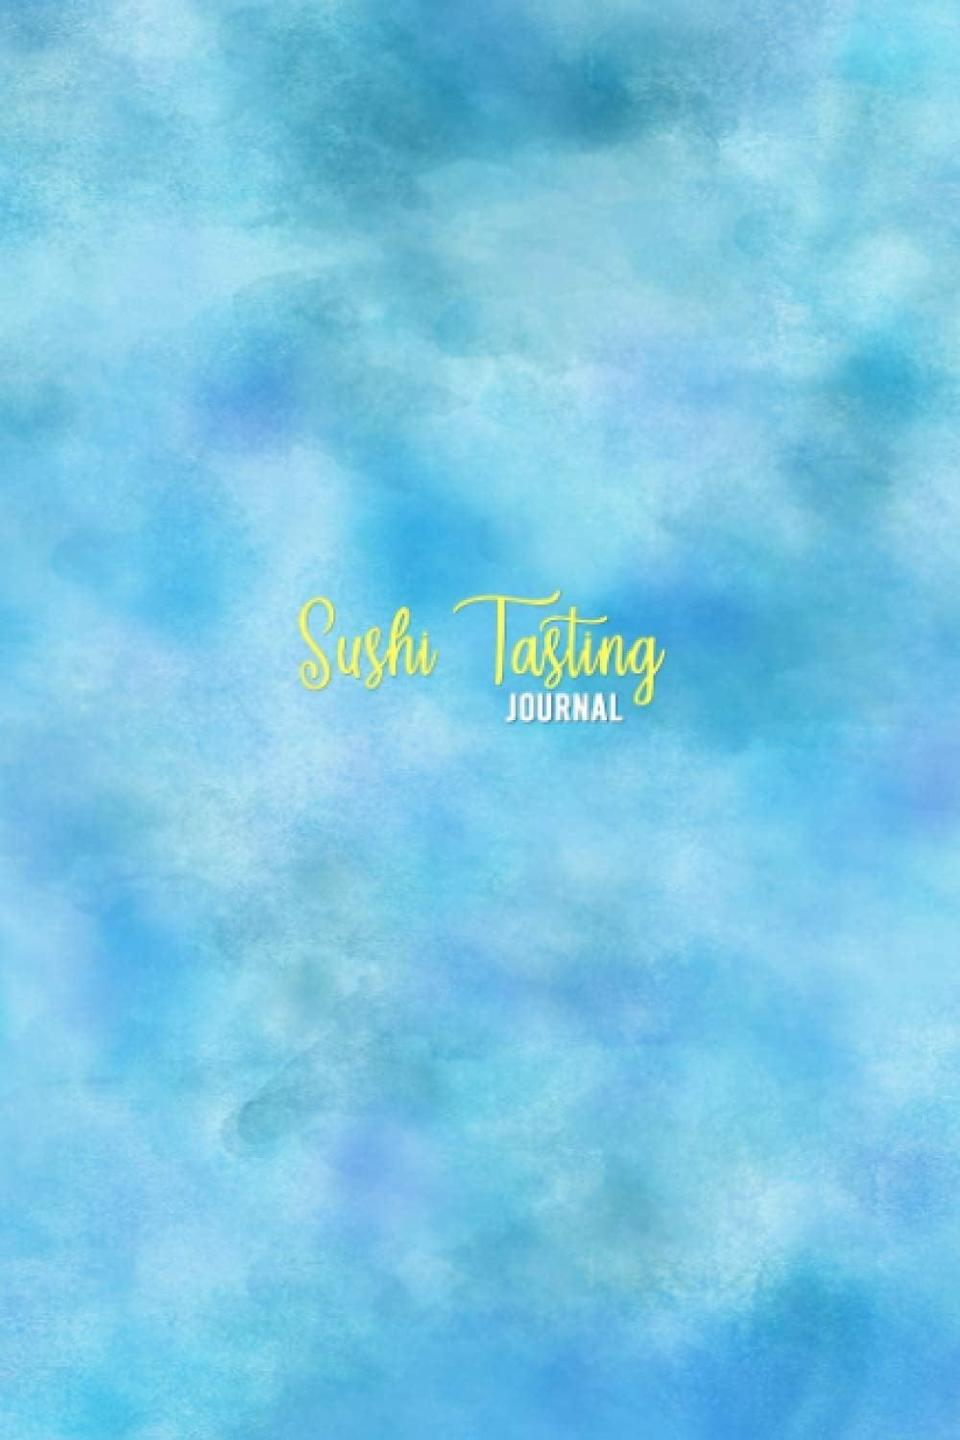 <p>Avid sushi eaters will love this thoughtful <span>Sushi Tasting Journal</span> ($8). Each page is designed to record the important elements of sushi tasting so they can look back at their best bites.</p>